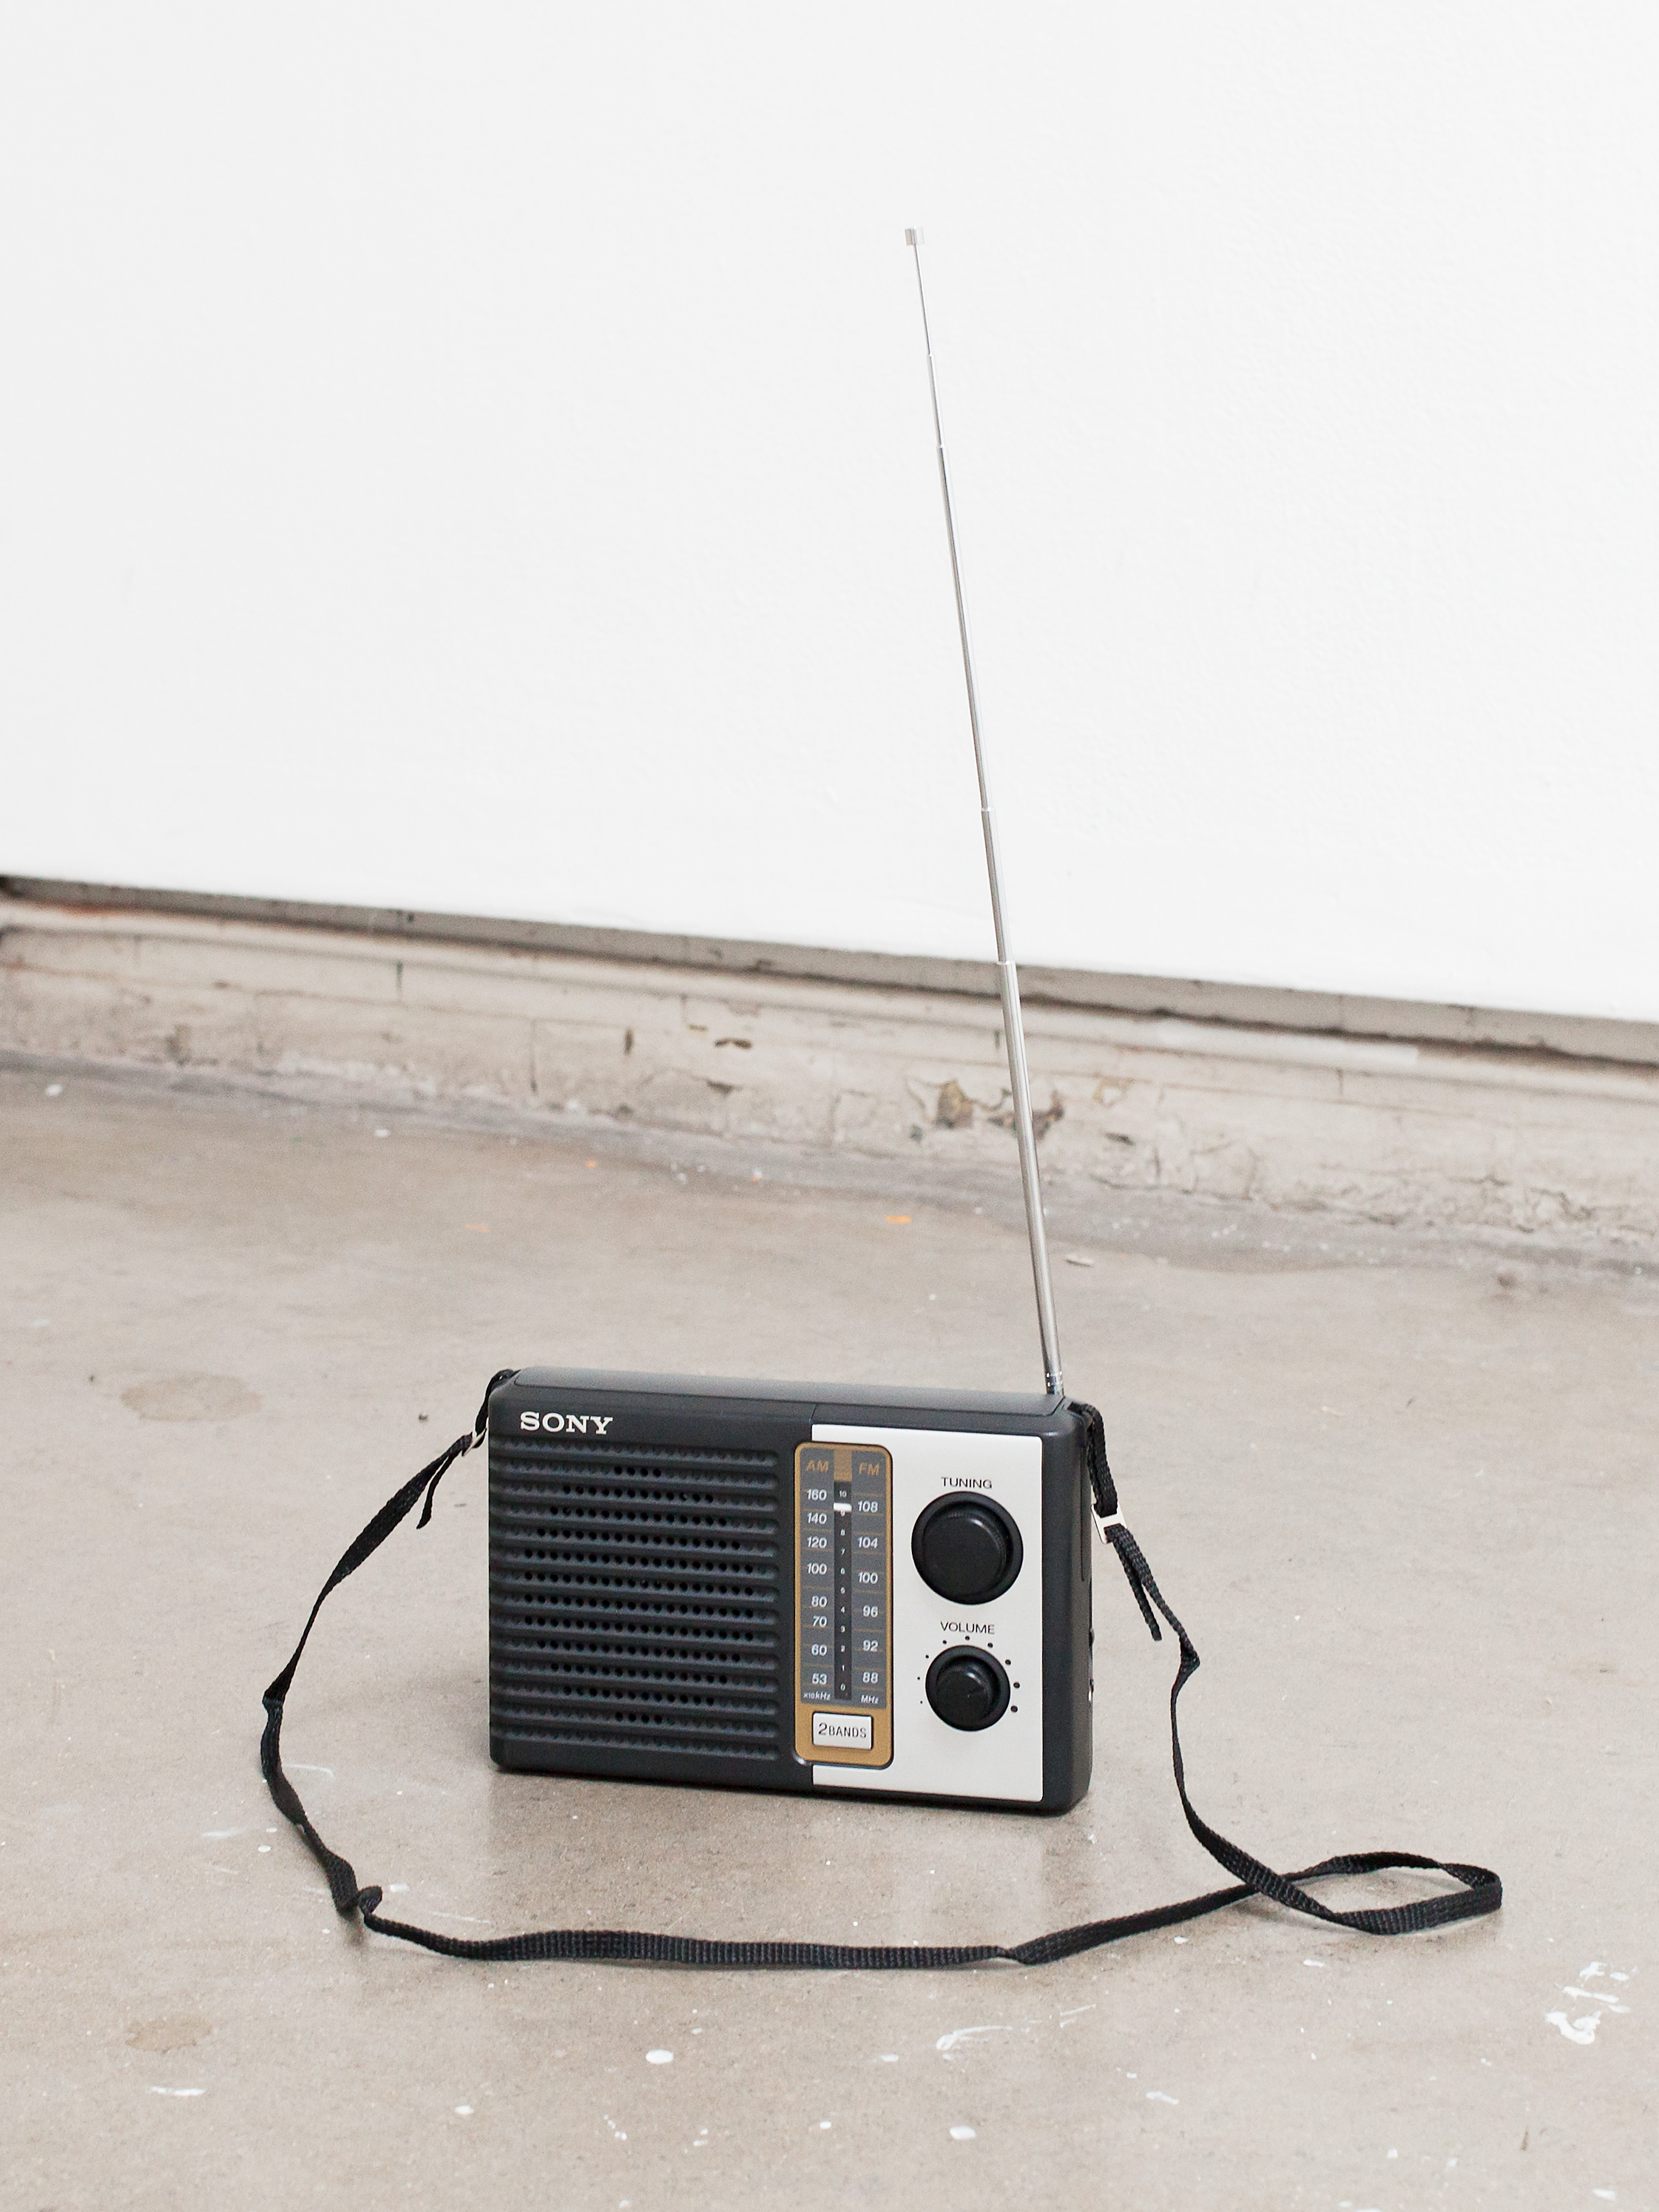 On terms on which we all agree, 2015 Verbatim vocal re-performance of interview with Paul Keating, John Laws Morning Show, 2UE Radio, Sydney, 1993. 15′53″, looped. Battery-operated radio, digital audio player, FM radio transmitter, electronic components, 13 x 20.5 x 5.5 cm (folded) Installation view, Axis and Allies, Midway Studios, The University of Chicago, May 2015